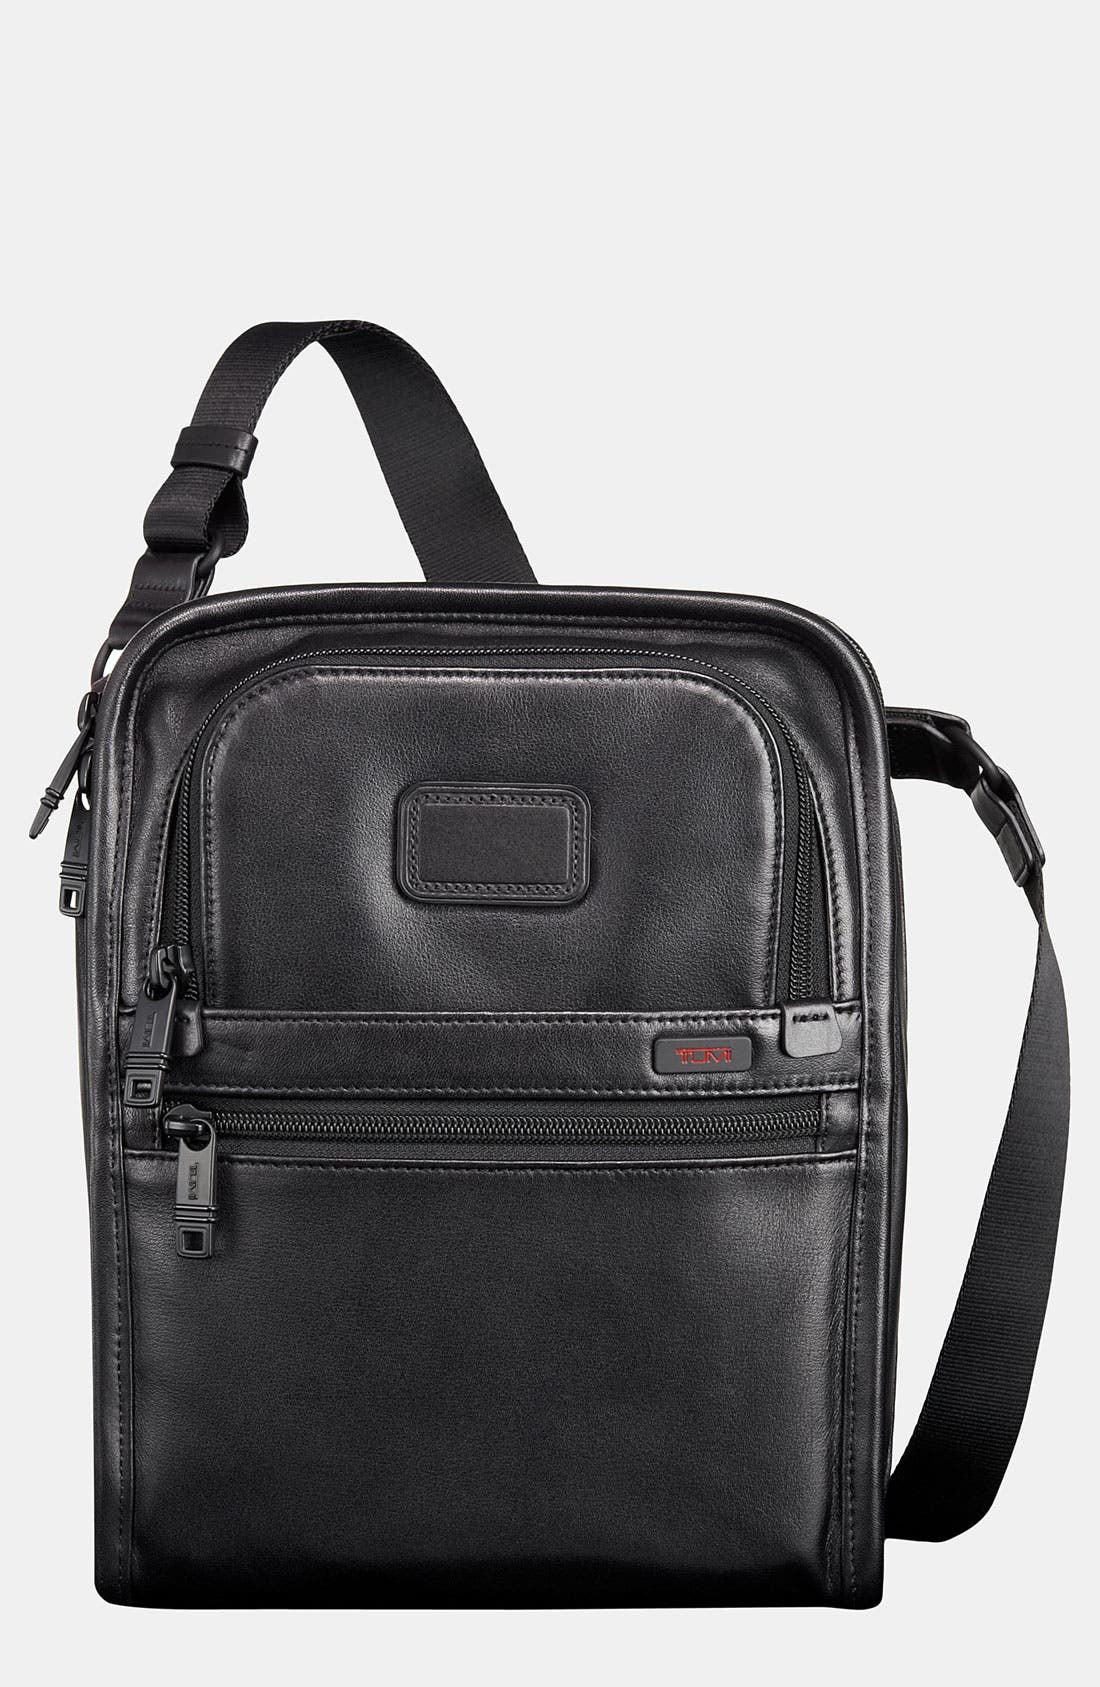 Main Image - Tumi 'Alpha' Organizer Travel Leather Tote